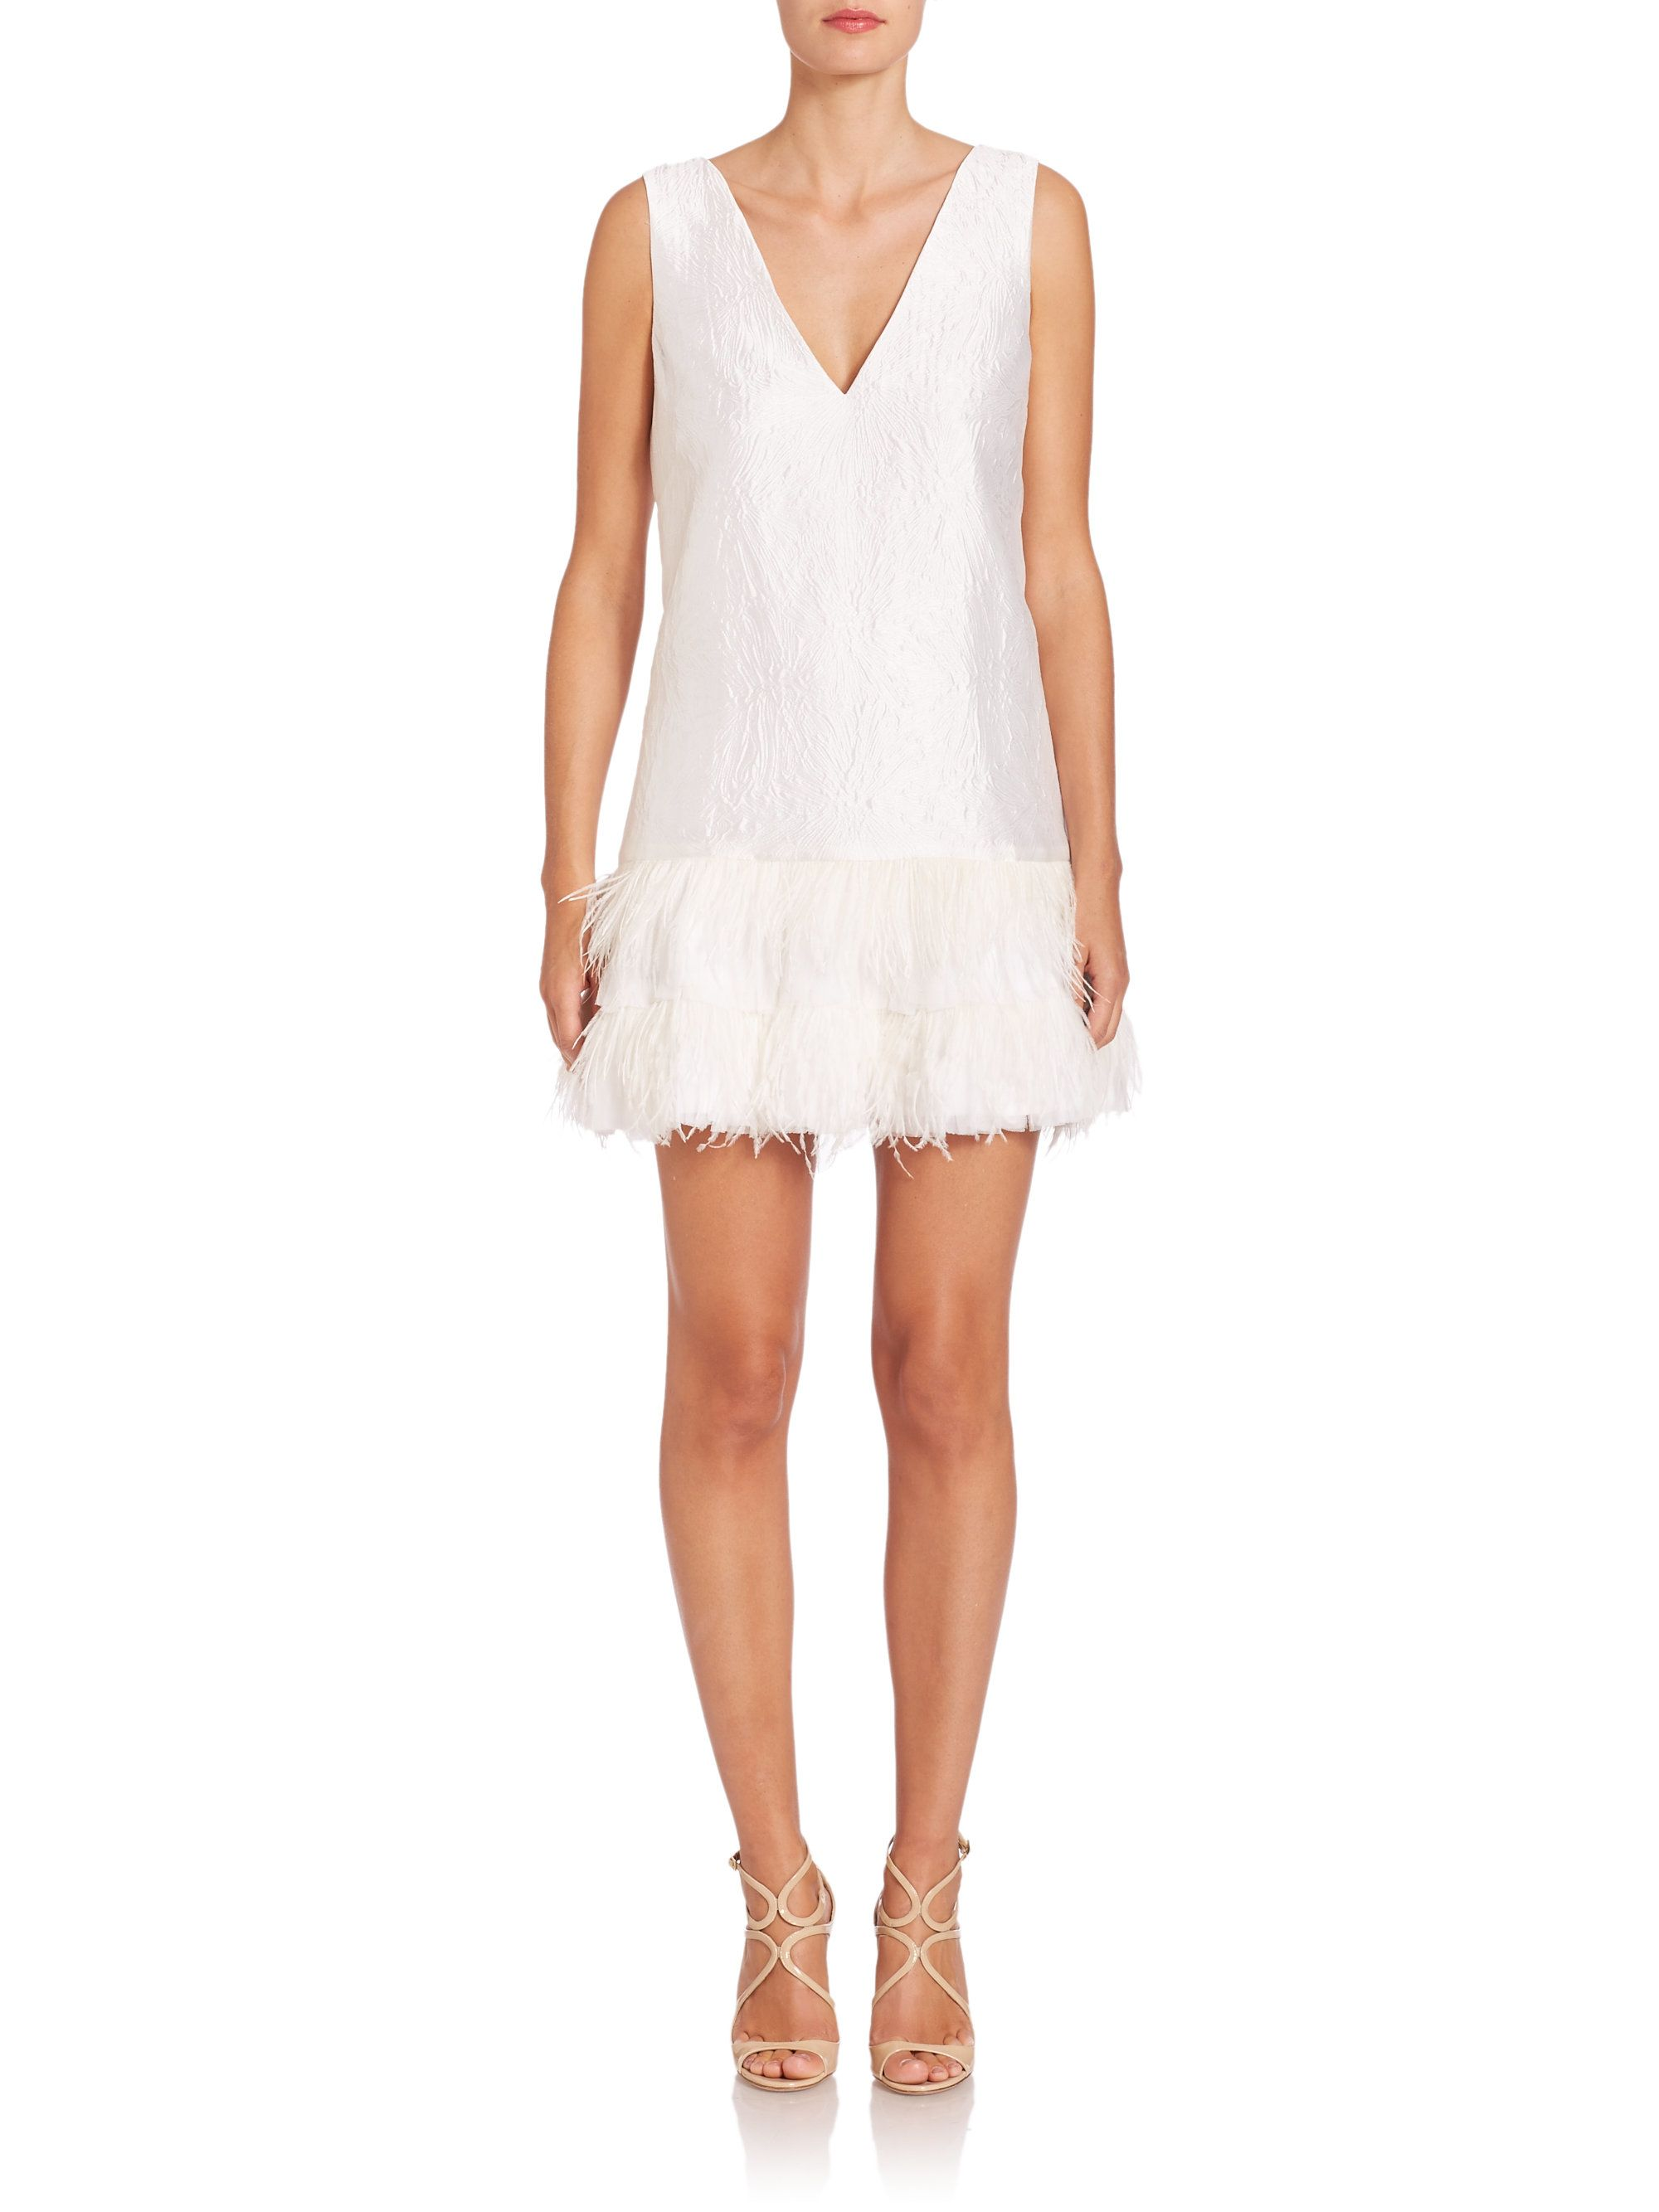 Listing not available - BCBGMaxAzria Dresses Skirts from Edizas ...